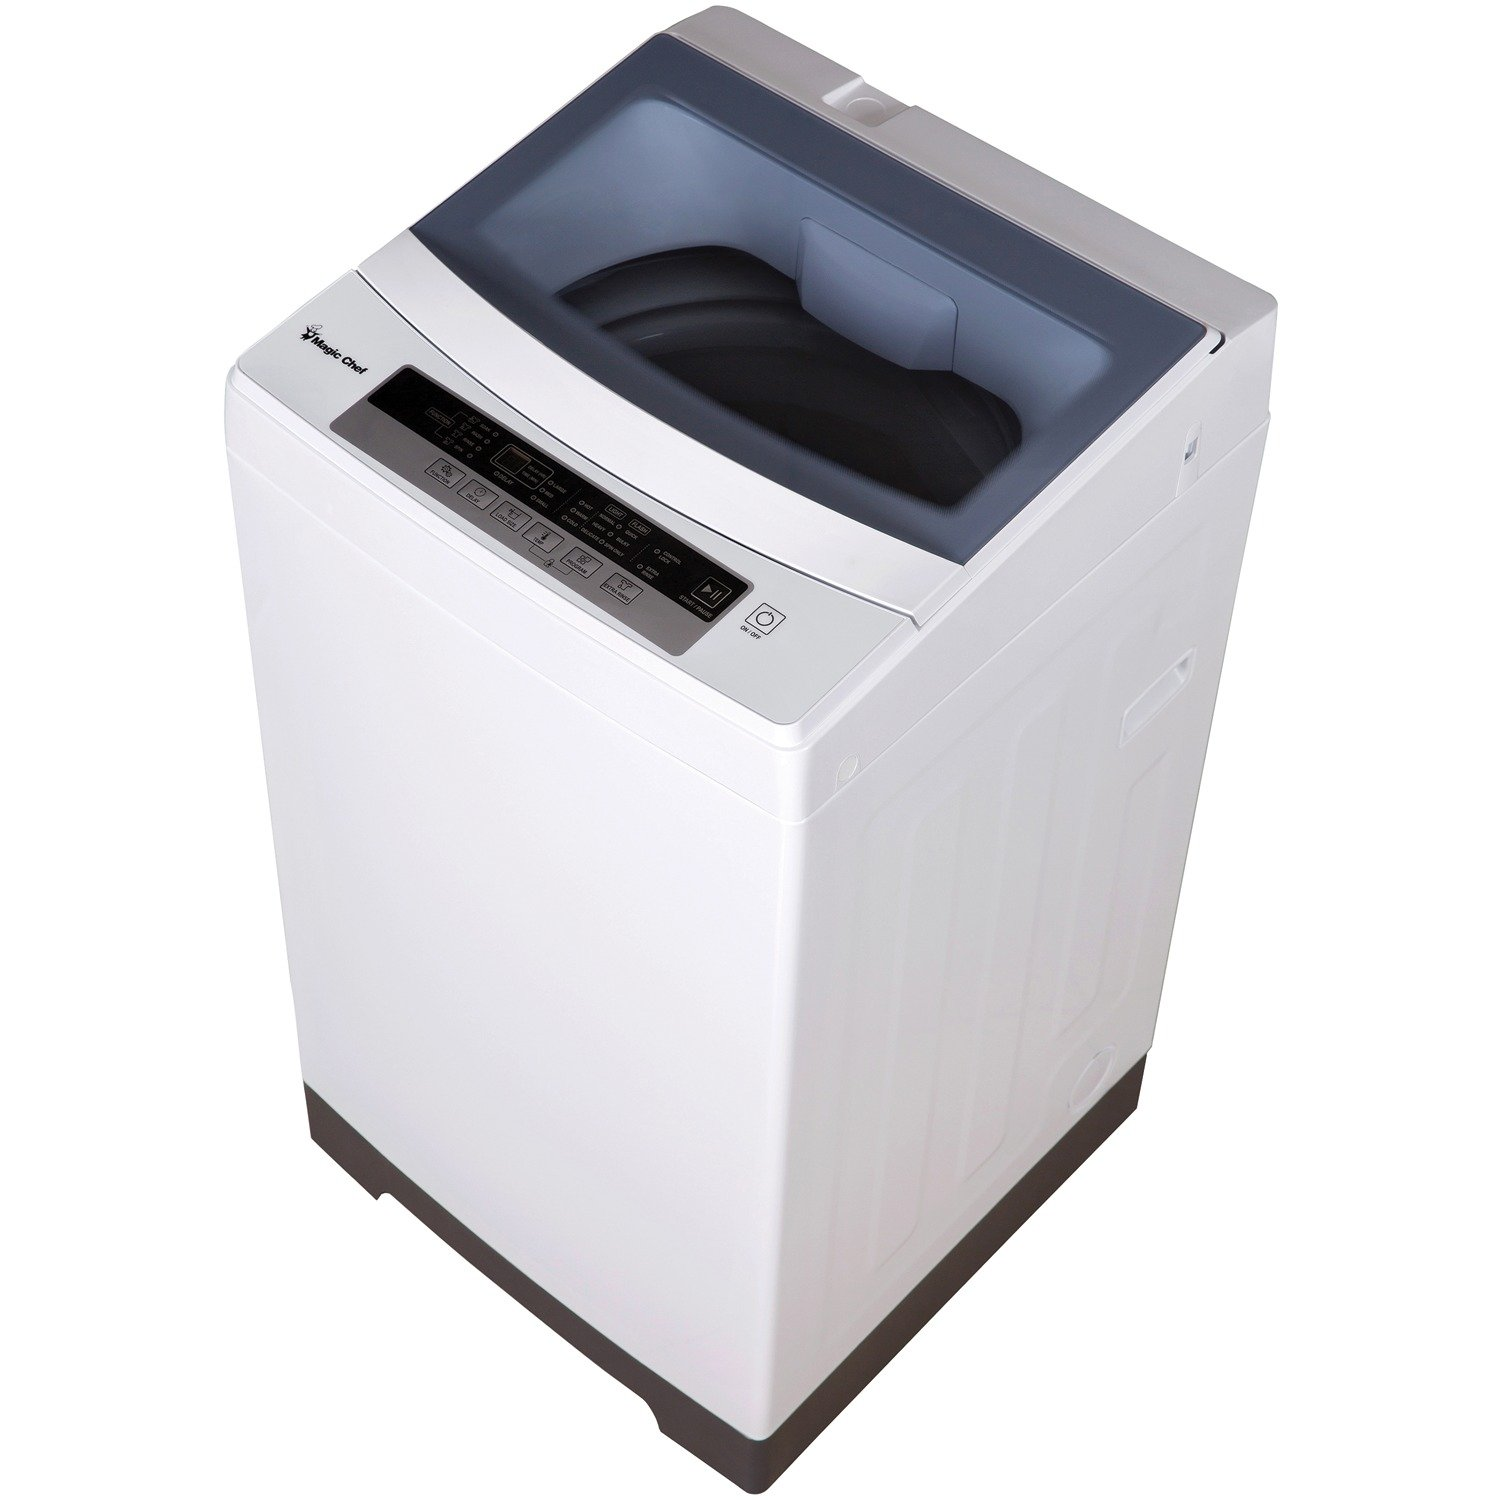 1.6 Cu. Ft. Compact Top-Load Washer in White Magic Chef MCSTCW16W4